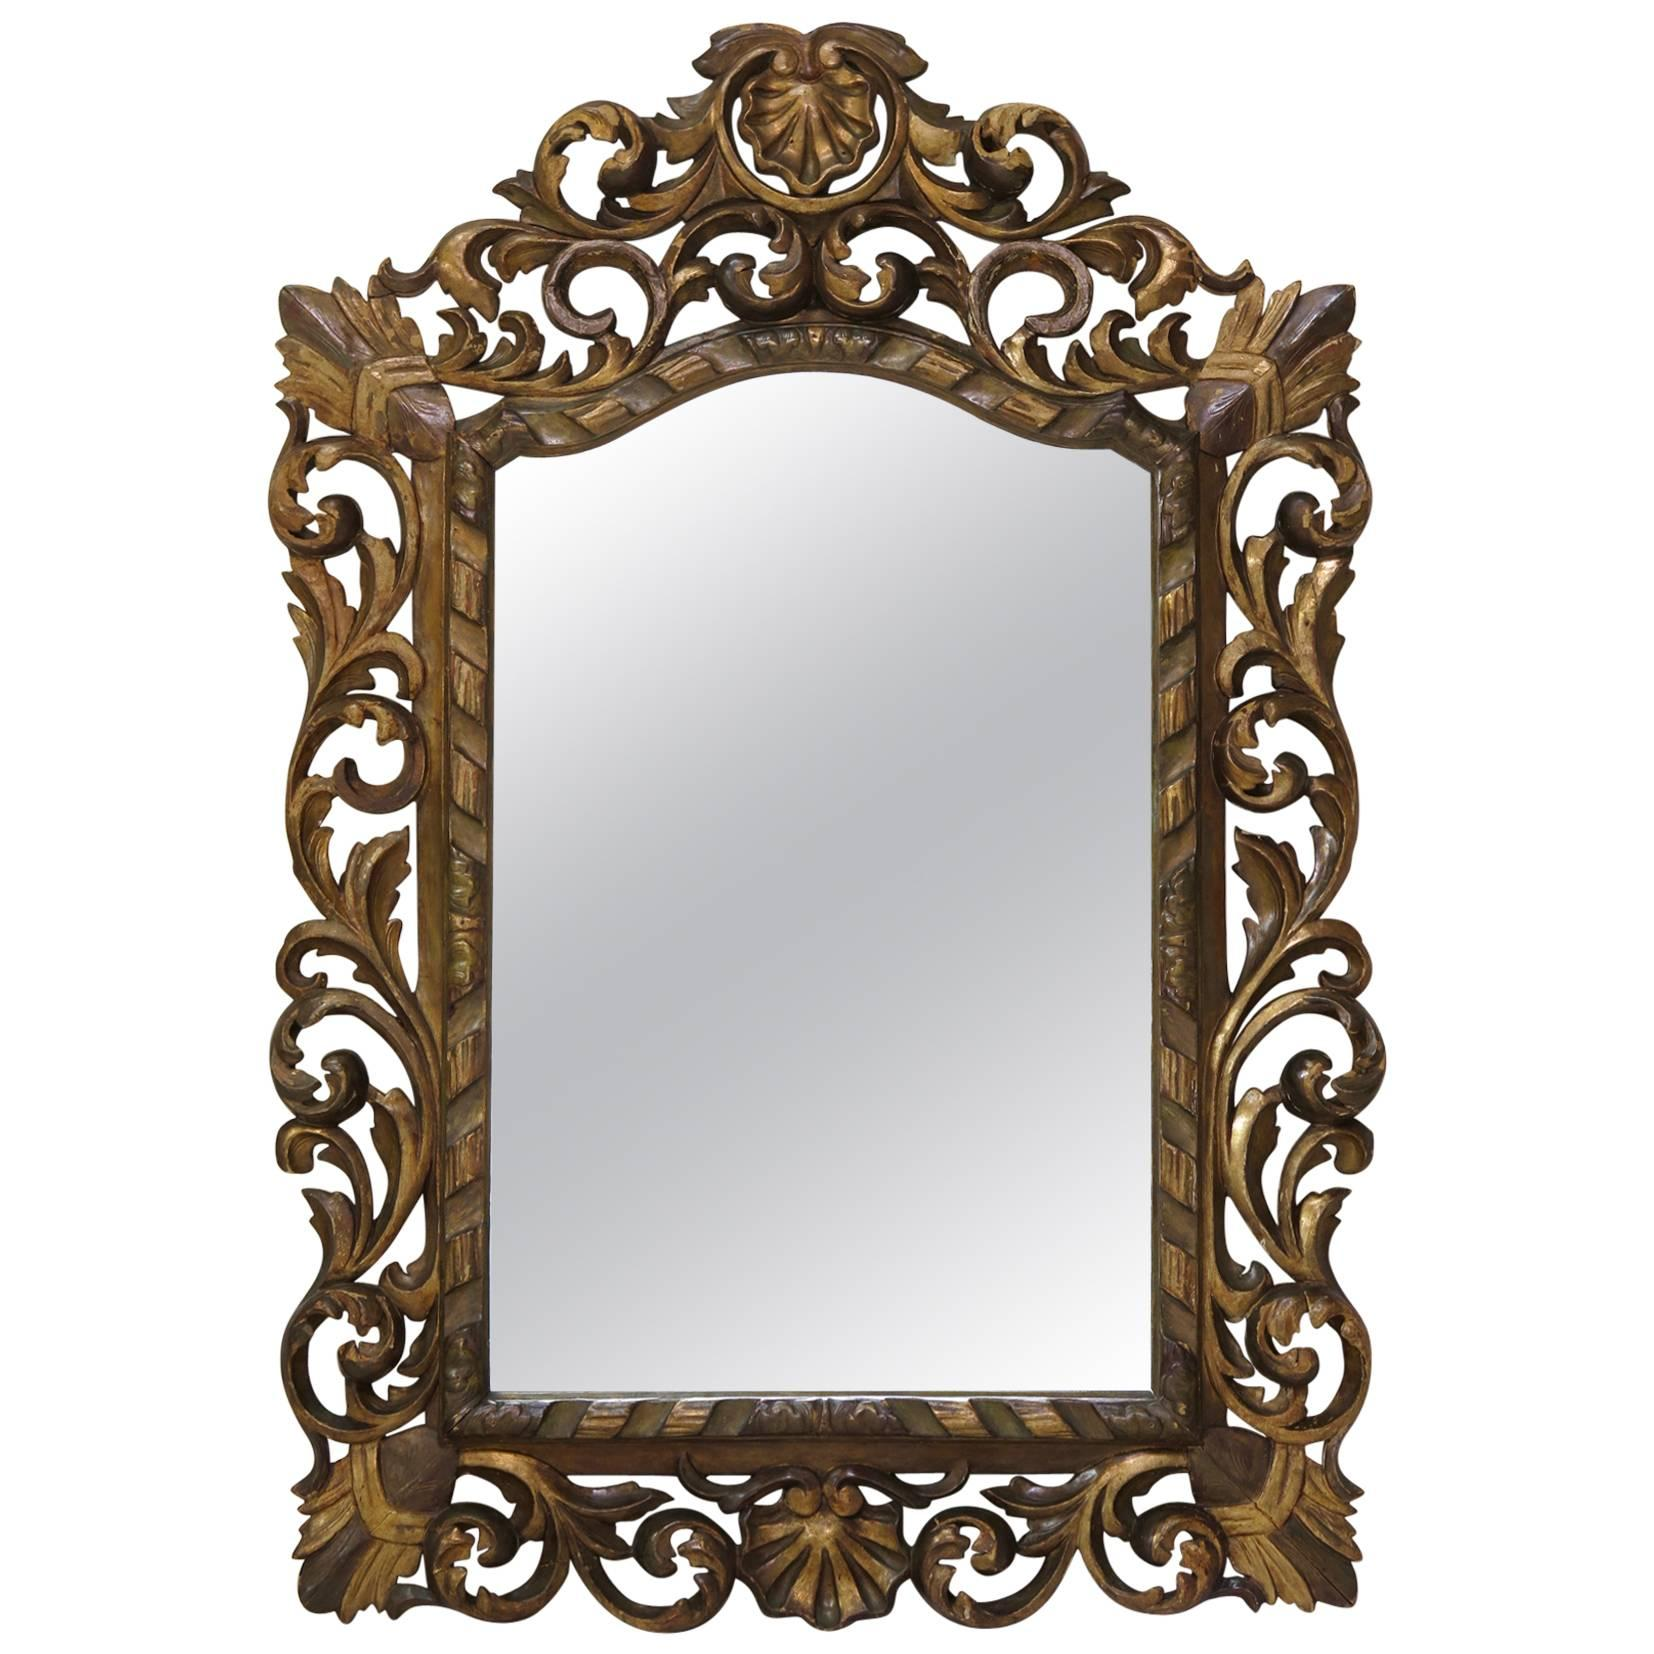 Large Baroque Sculpted Mirror, France, 19th Century